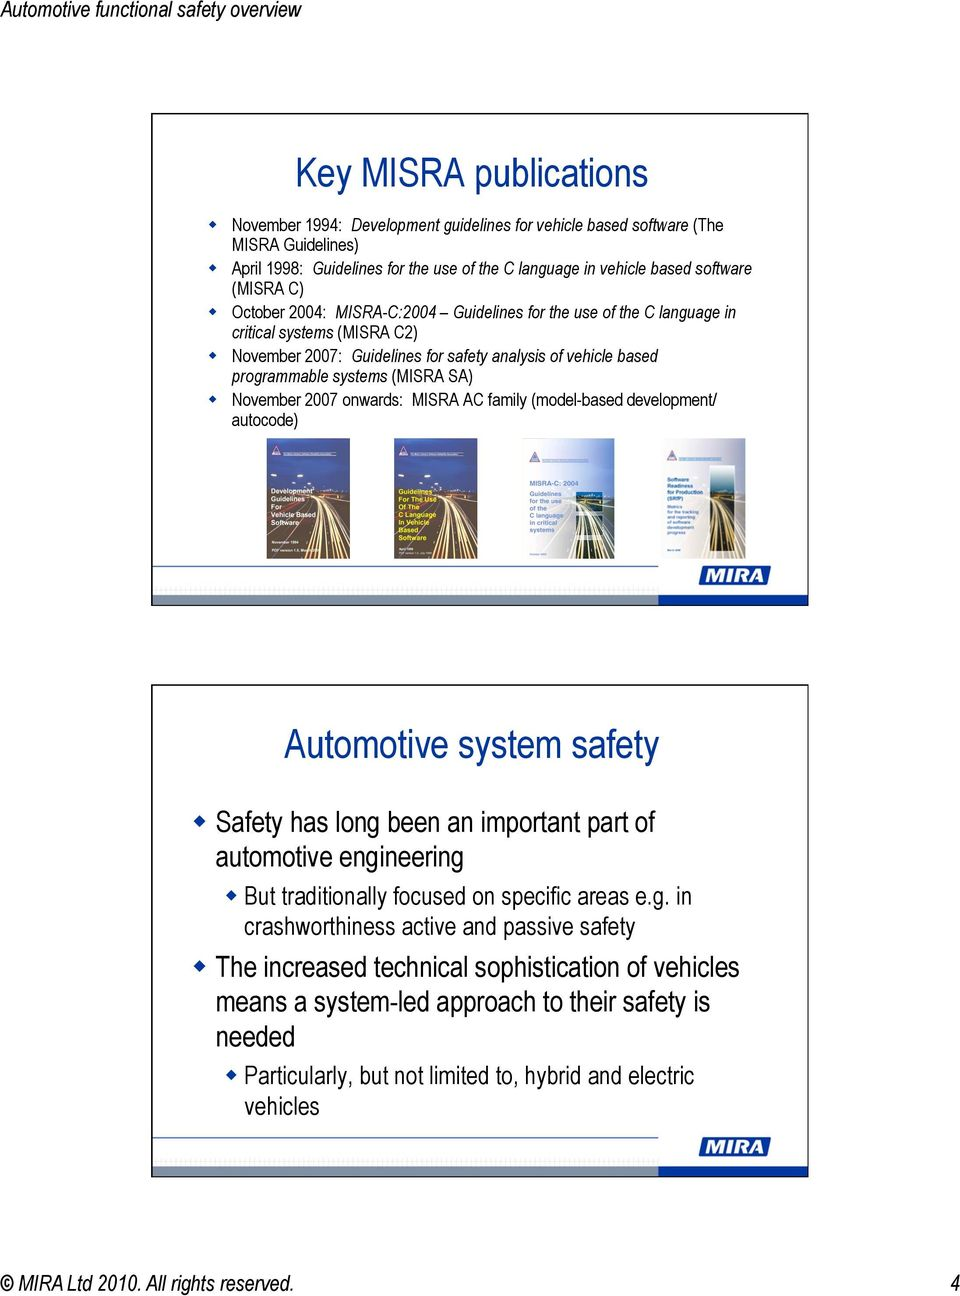 November 2007 onwards: MISRA AC family (model-based development/ autocode) Automotive system safety Safety has long been an important part of automotive engineering But traditionally focused on